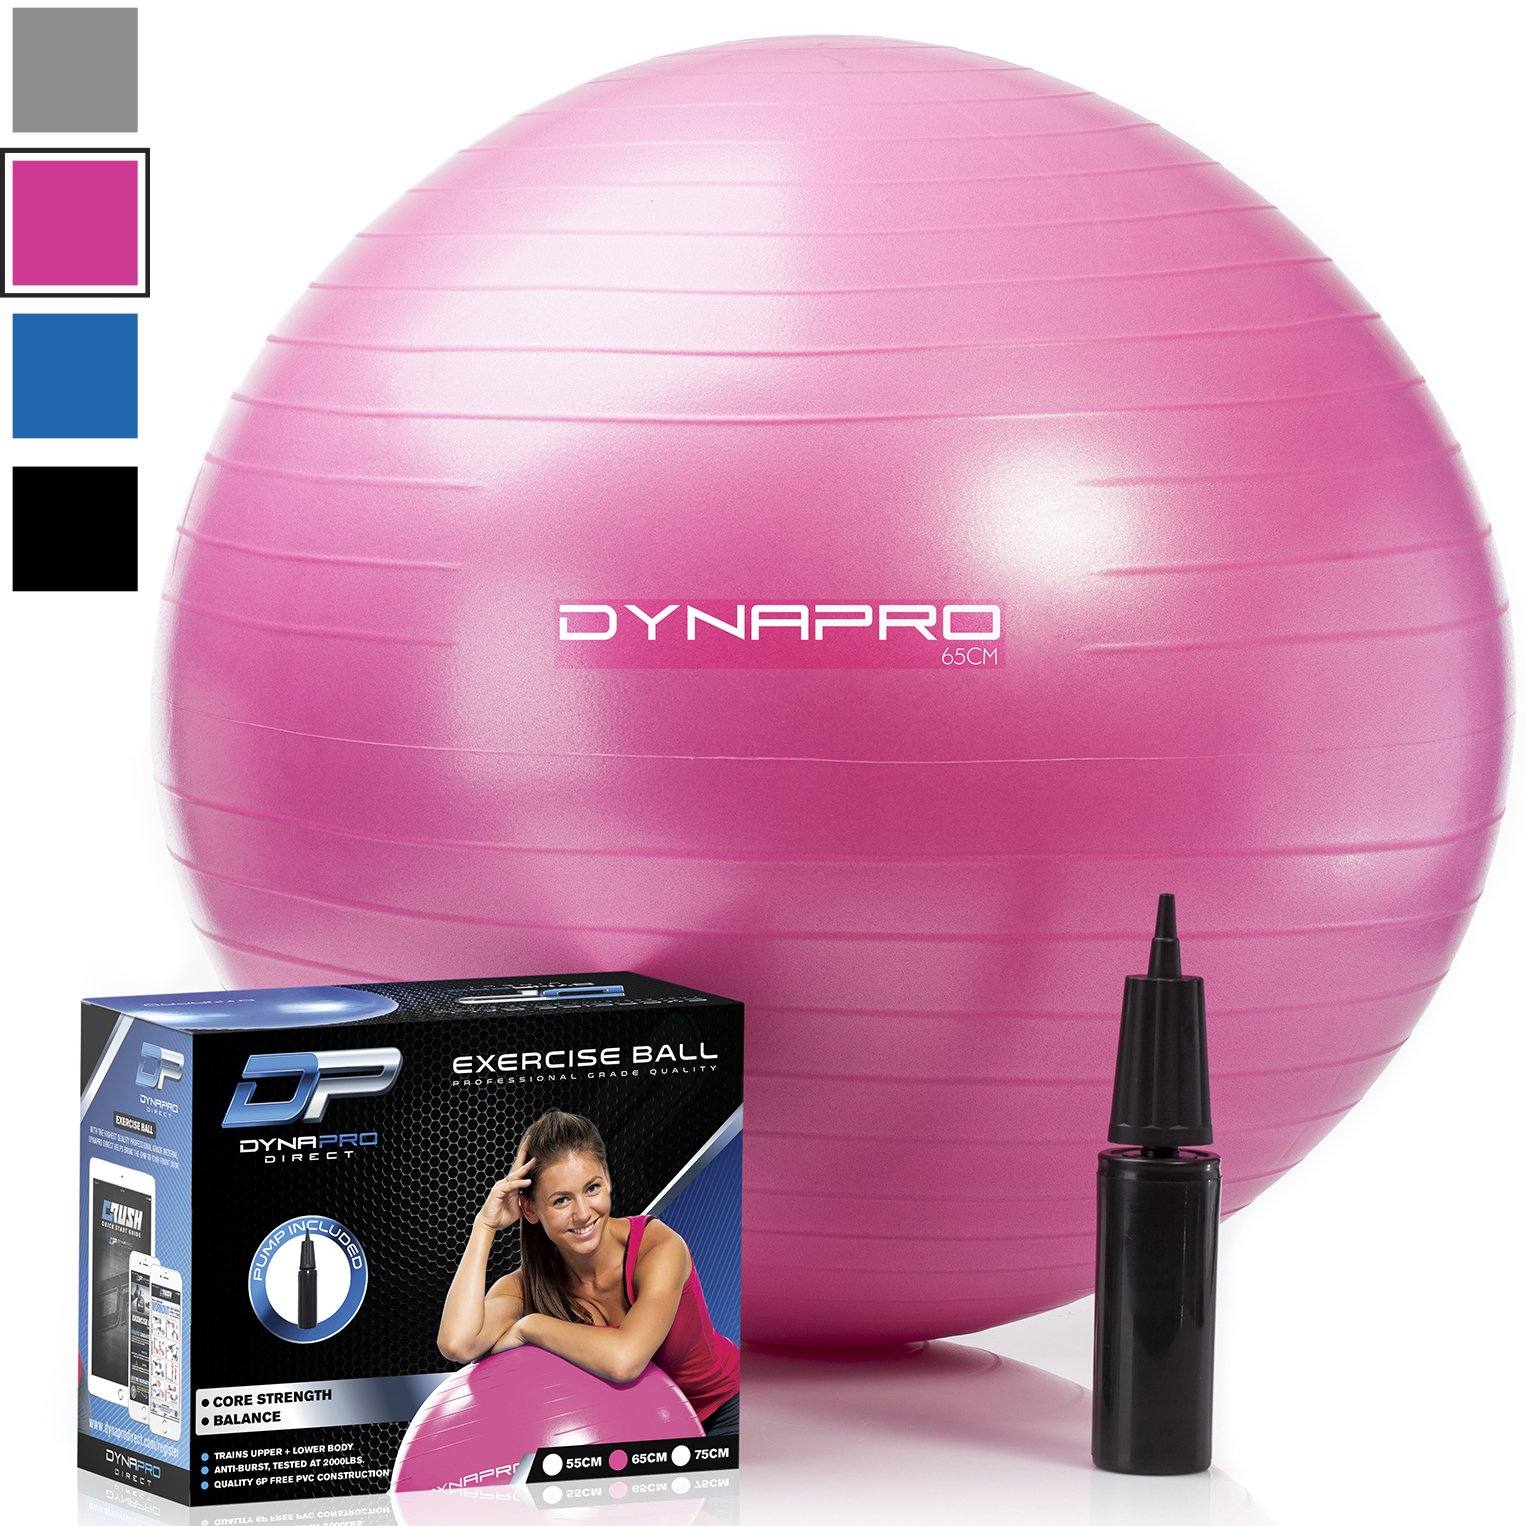 DYNAPRO Exercise Ball - 2,000 lbs Stability Ball - Professional Grade - Anti Burst Exercise Equipment for Home, Balance, Gym, Core Strength, Yoga, Fitness, Desk Chairs (Pink, 45 Centimeters)